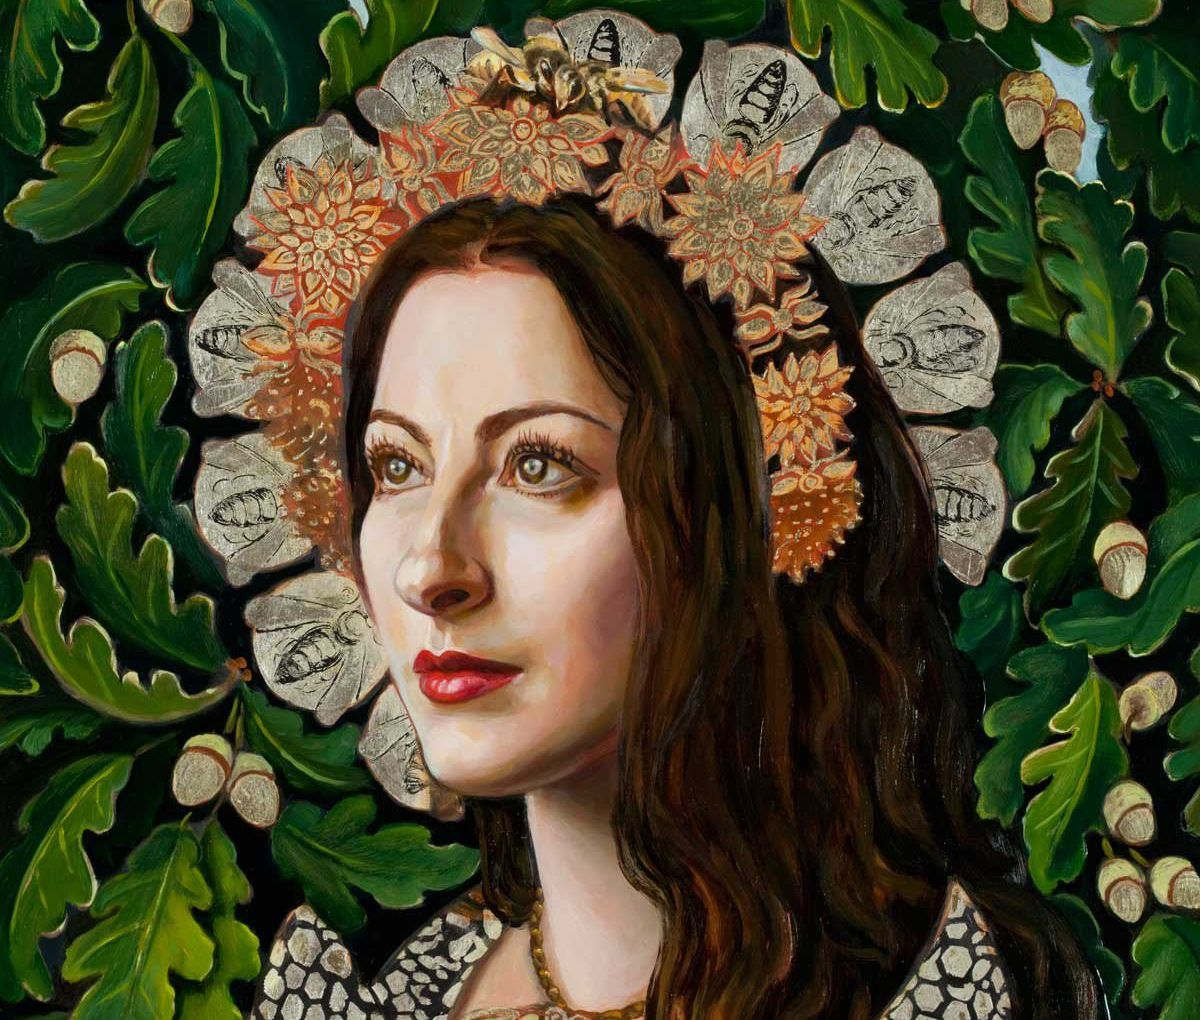 Pam Grossman feature image potrait detail by Carrie Ann Baade